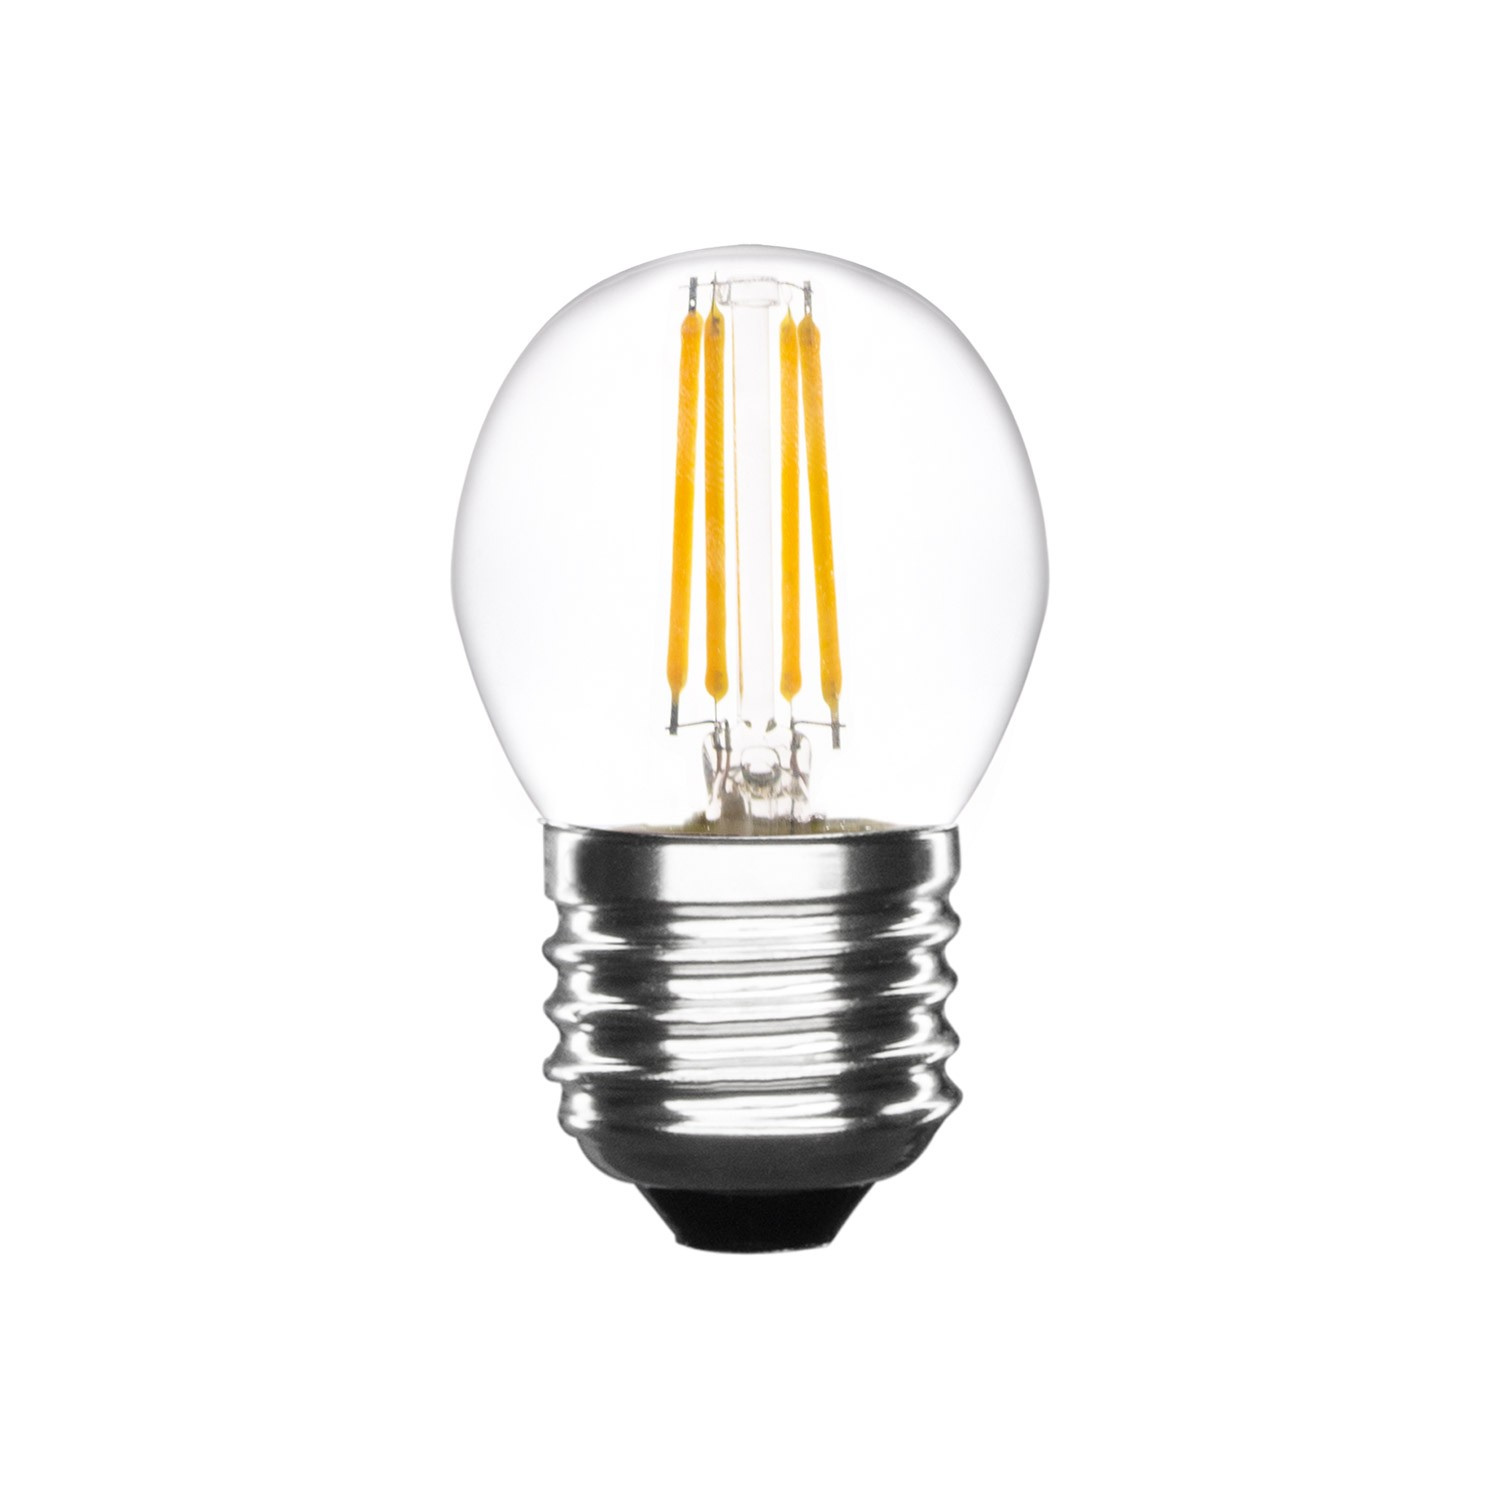 Class Bulb, gallery image 1